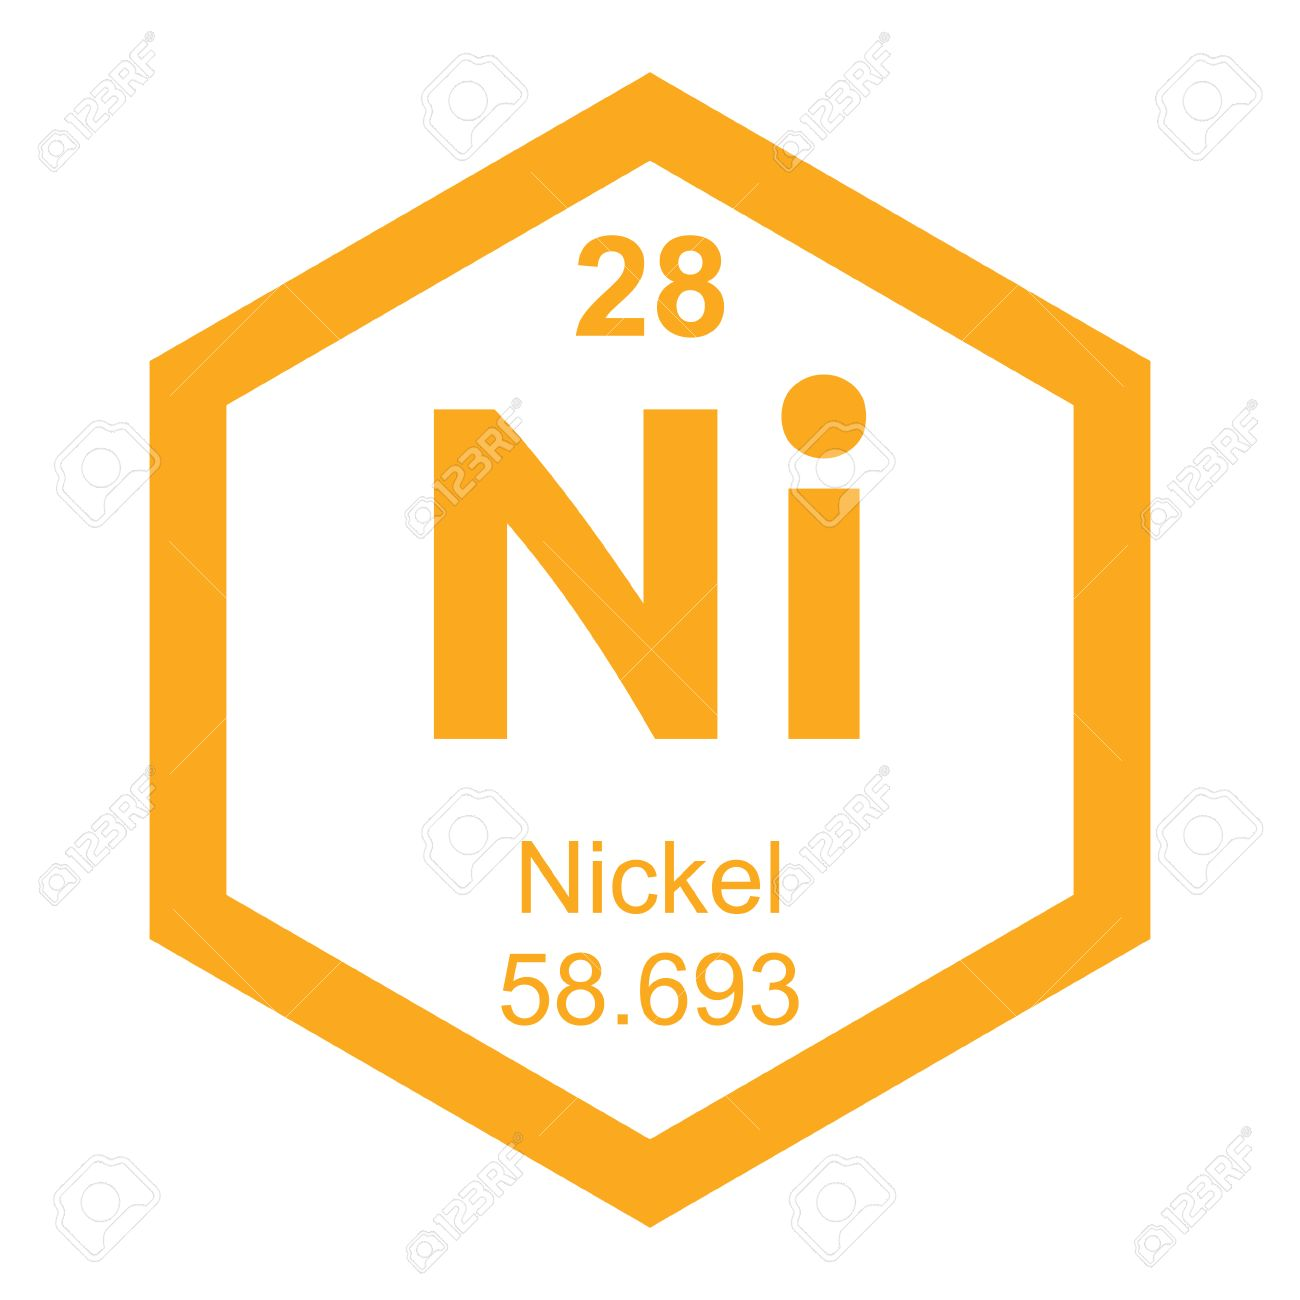 Nickel symbol periodic table image collections periodic table images nickel periodic table gallery periodic table images periodic table nickel royalty free cliparts vectors and stock gamestrikefo Choice Image